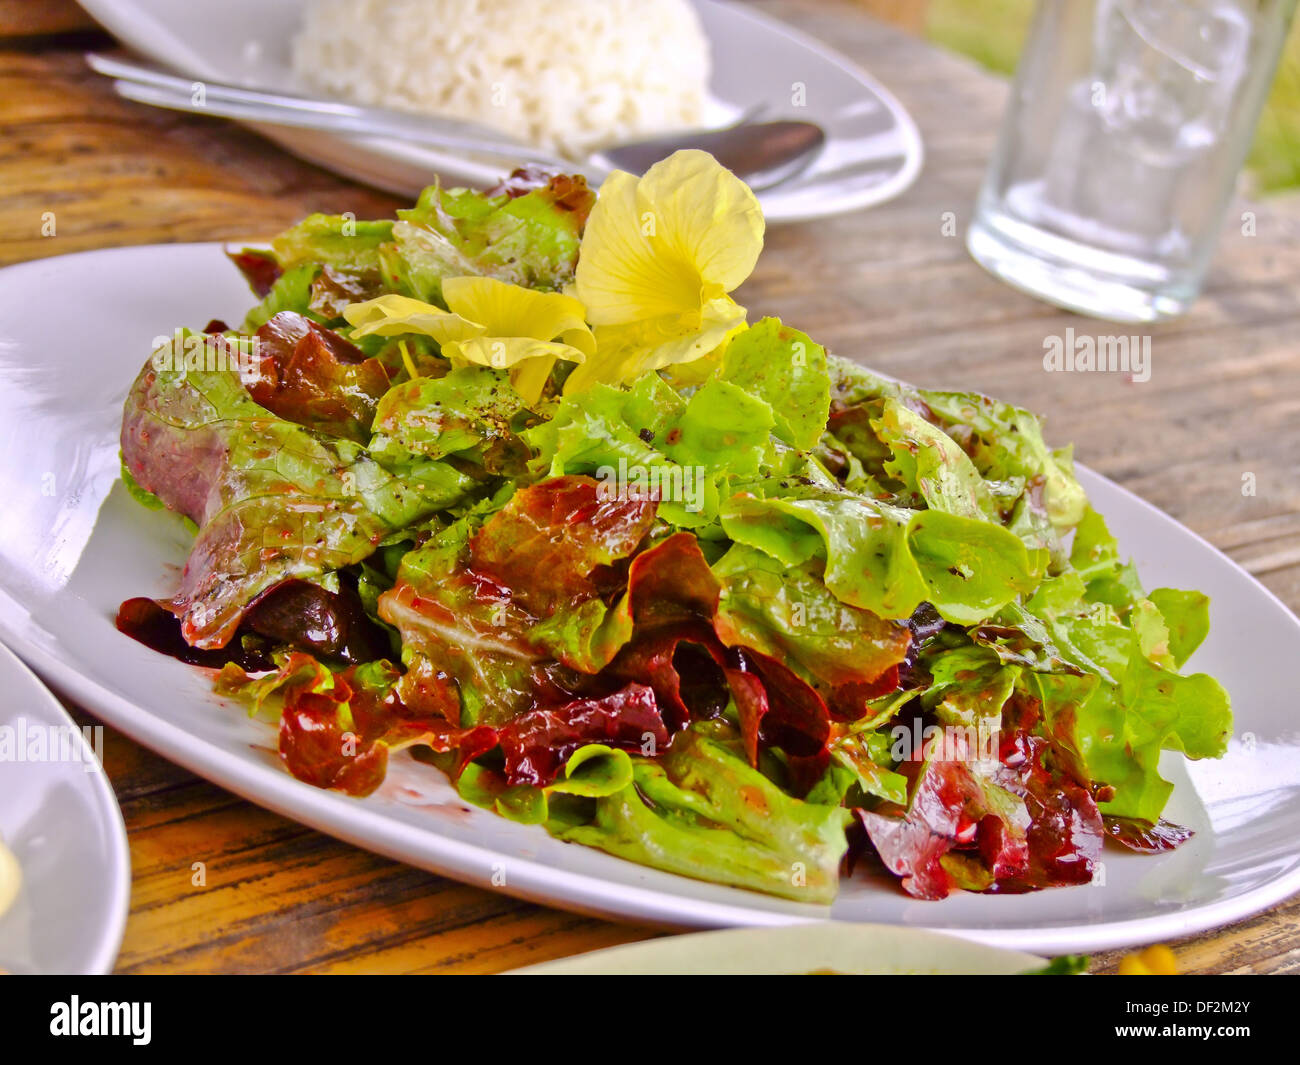 mixed salad in style of thai northen hilltribe - Stock Image